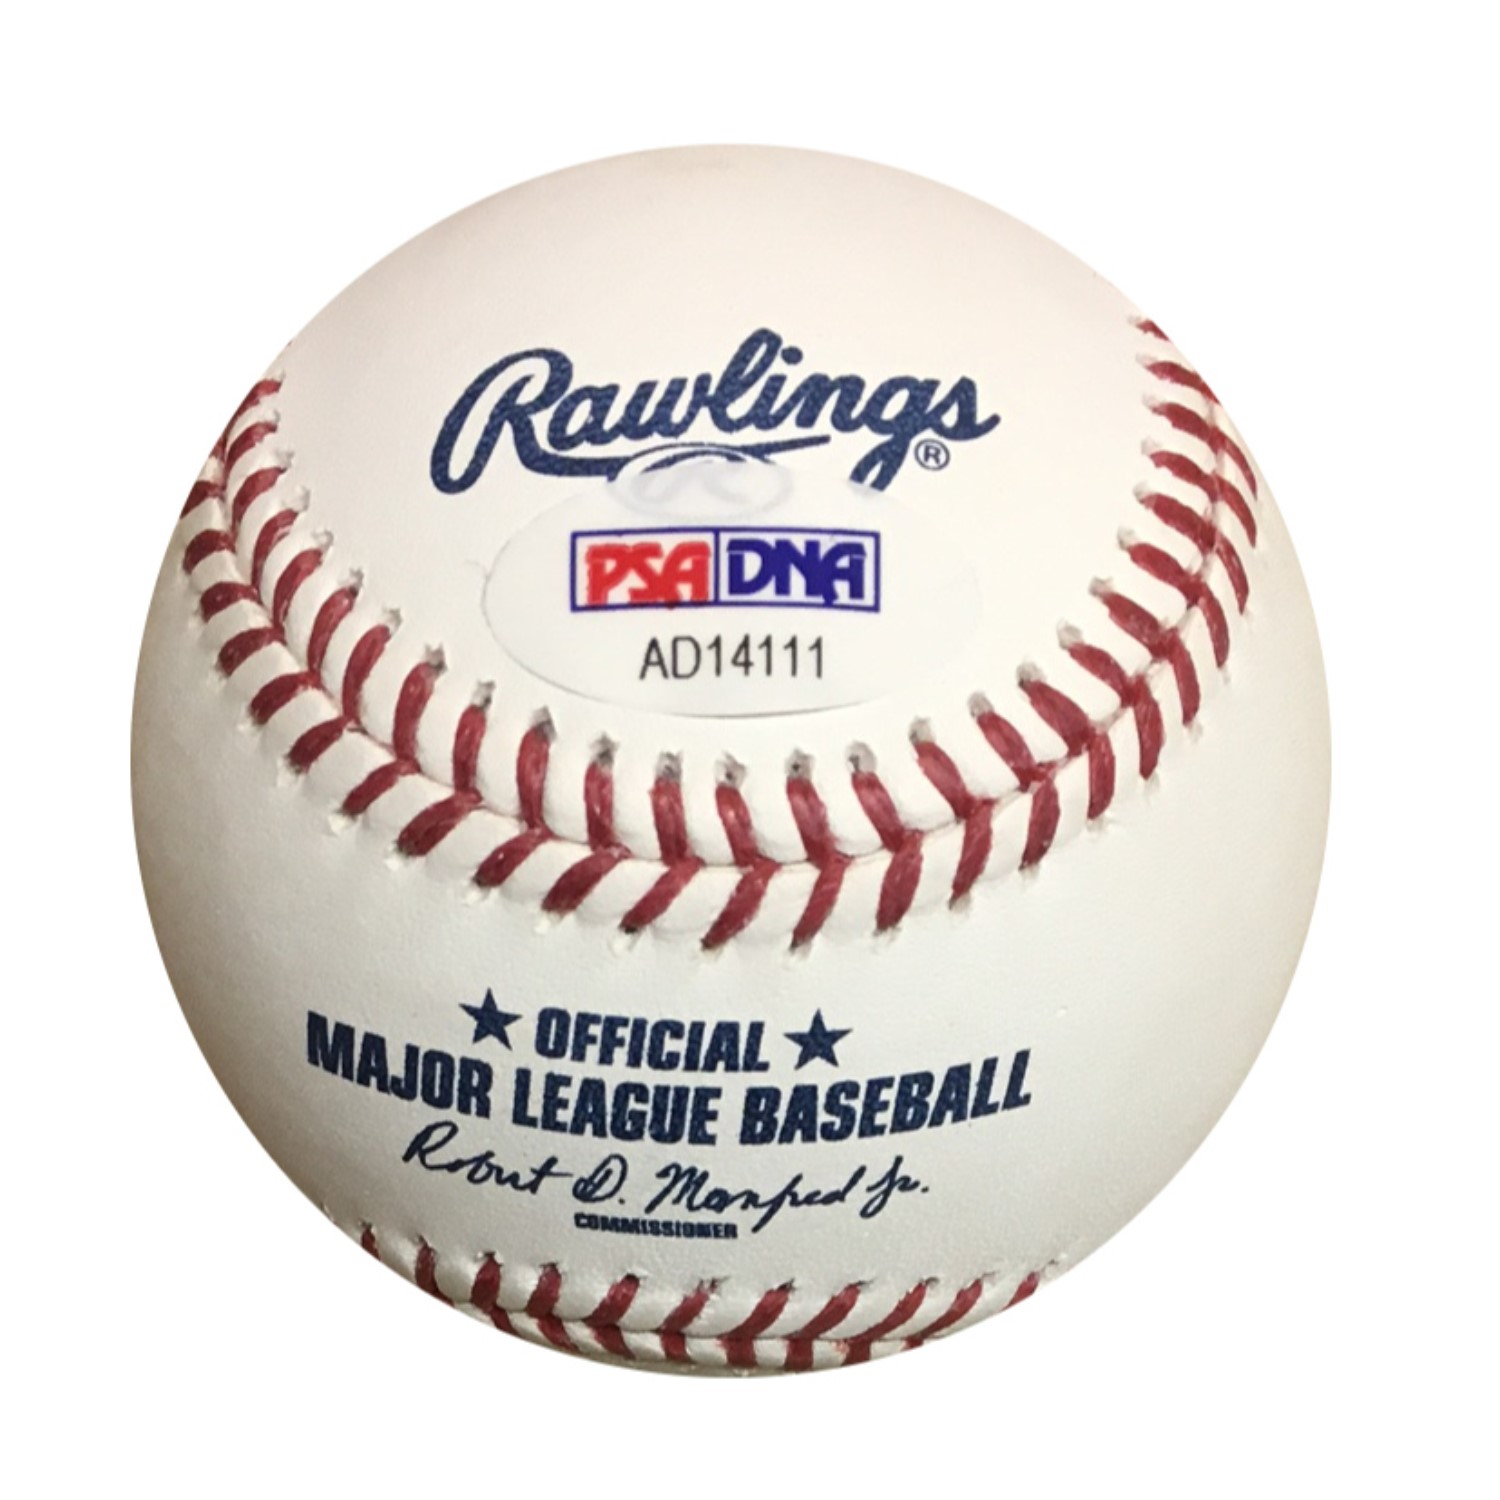 Salvador Perez Autographed MLB Authentic Signed Baseball PSA DNA COA Royals superstar Salvador Perez has signed this official MLB baseball.  Autograph is authenticated by PSA/DNA, the world's leading authenticator of sports autographs. Comes with their unique sticker # fixed to the item and verified on their website. Also, comes with their certificate of authenticity with same matching #. You will receive the EXACT item shown.